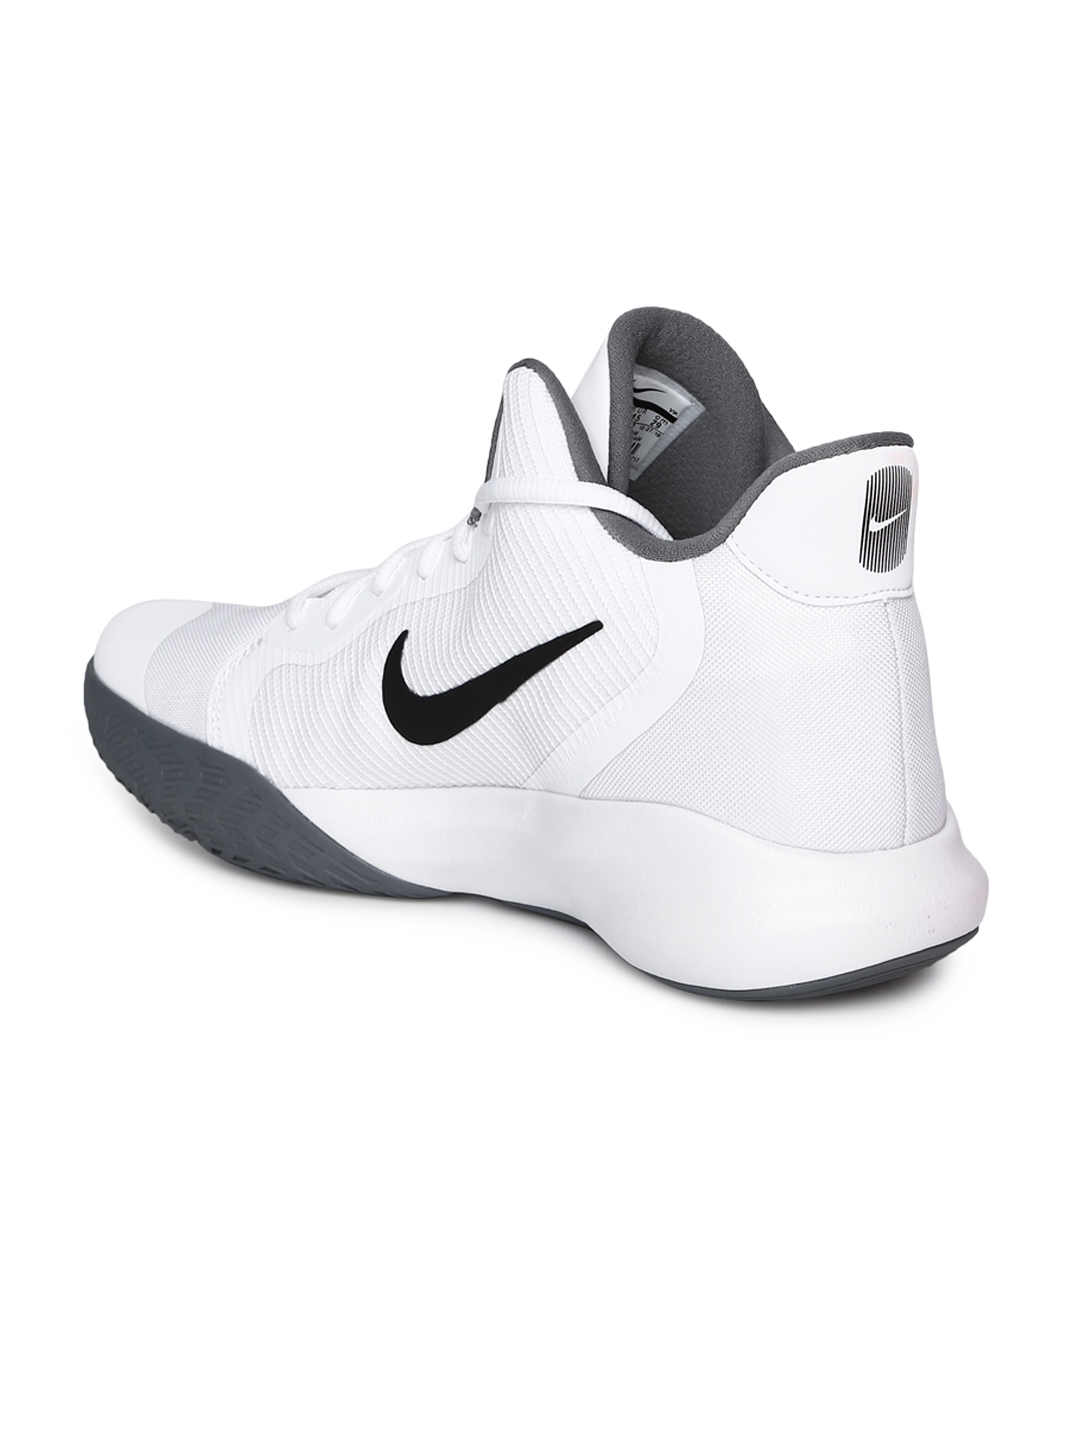 huge selection of 54ee8 a6f6d Nike Unisex White Precision III Mid-Top Basketball Shoes